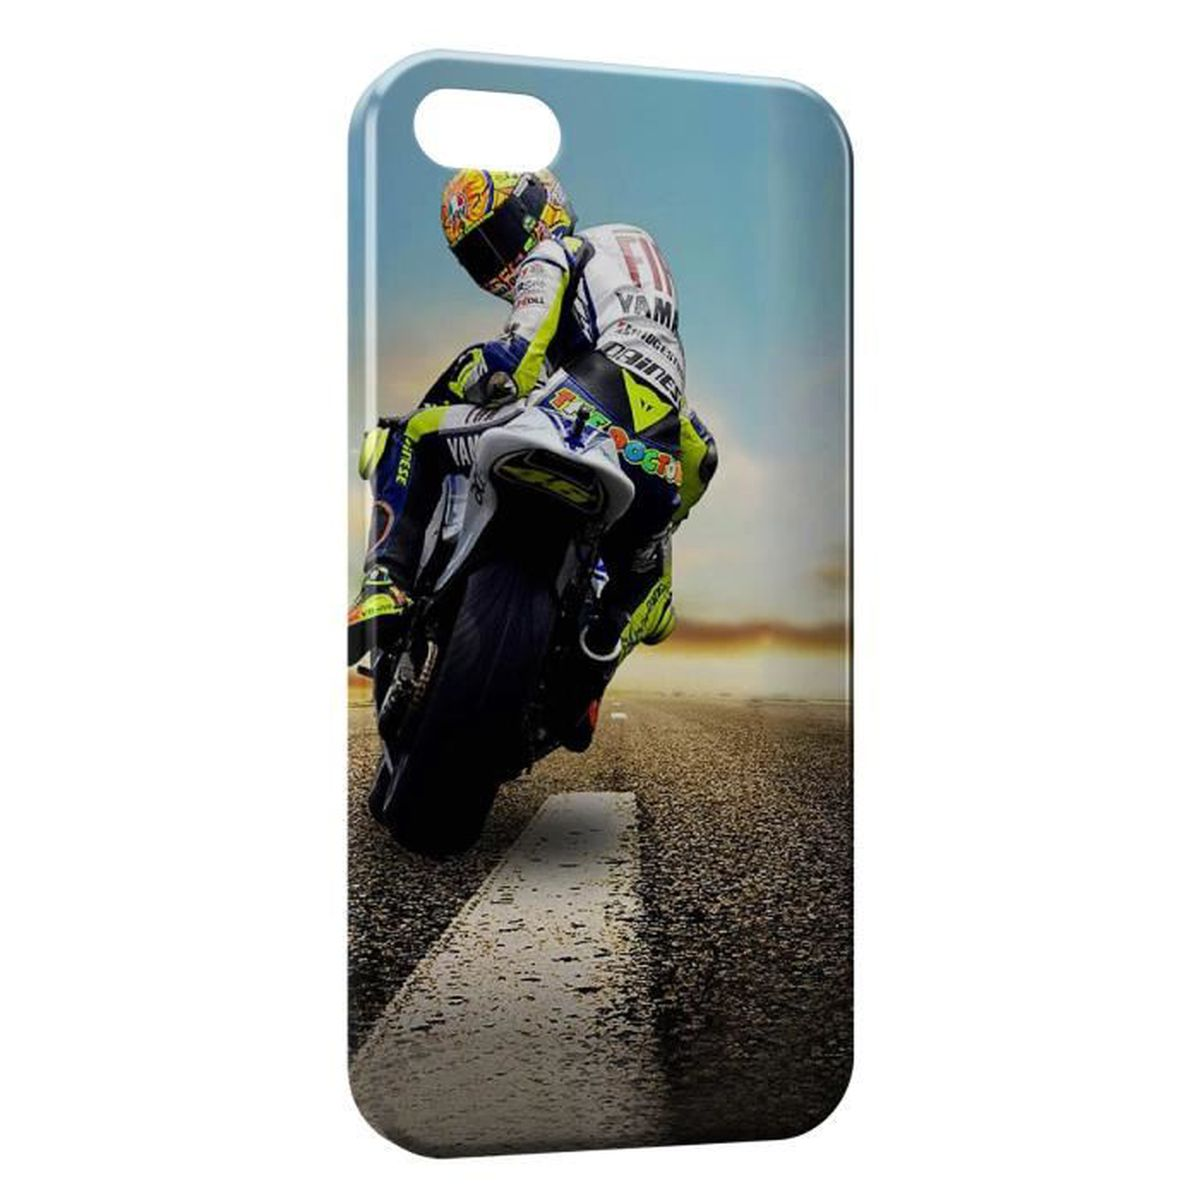 coques iphone 6 valentino rossi achat vente pas cher. Black Bedroom Furniture Sets. Home Design Ideas